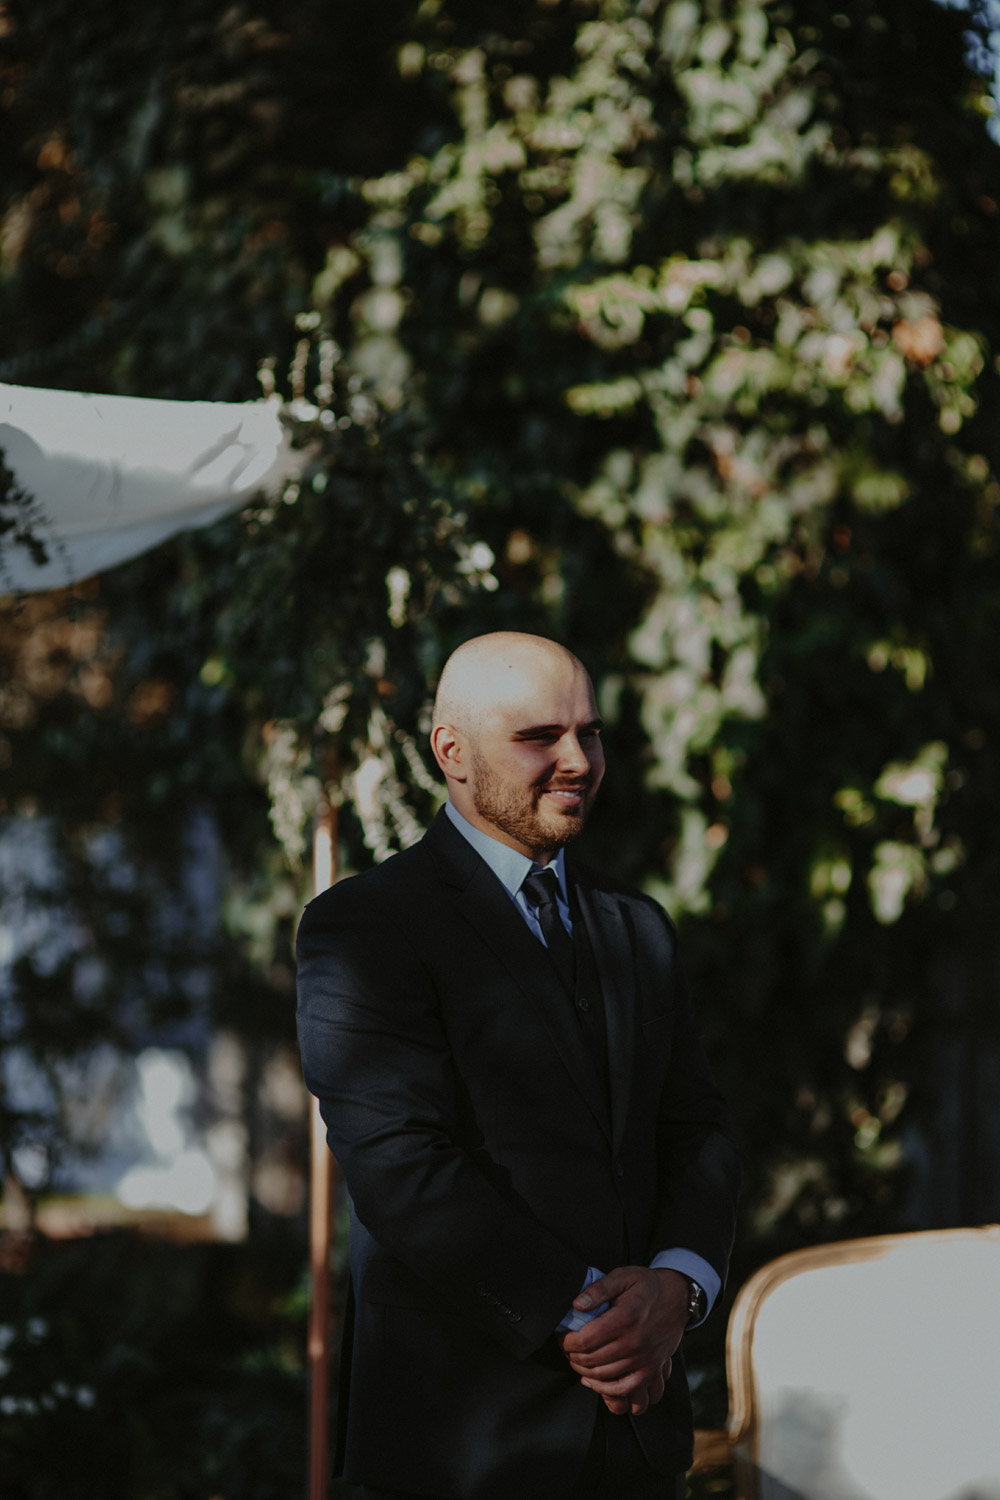 Greg-Petersen-San-Francisco-Wedding-Photographer-1-47.jpg